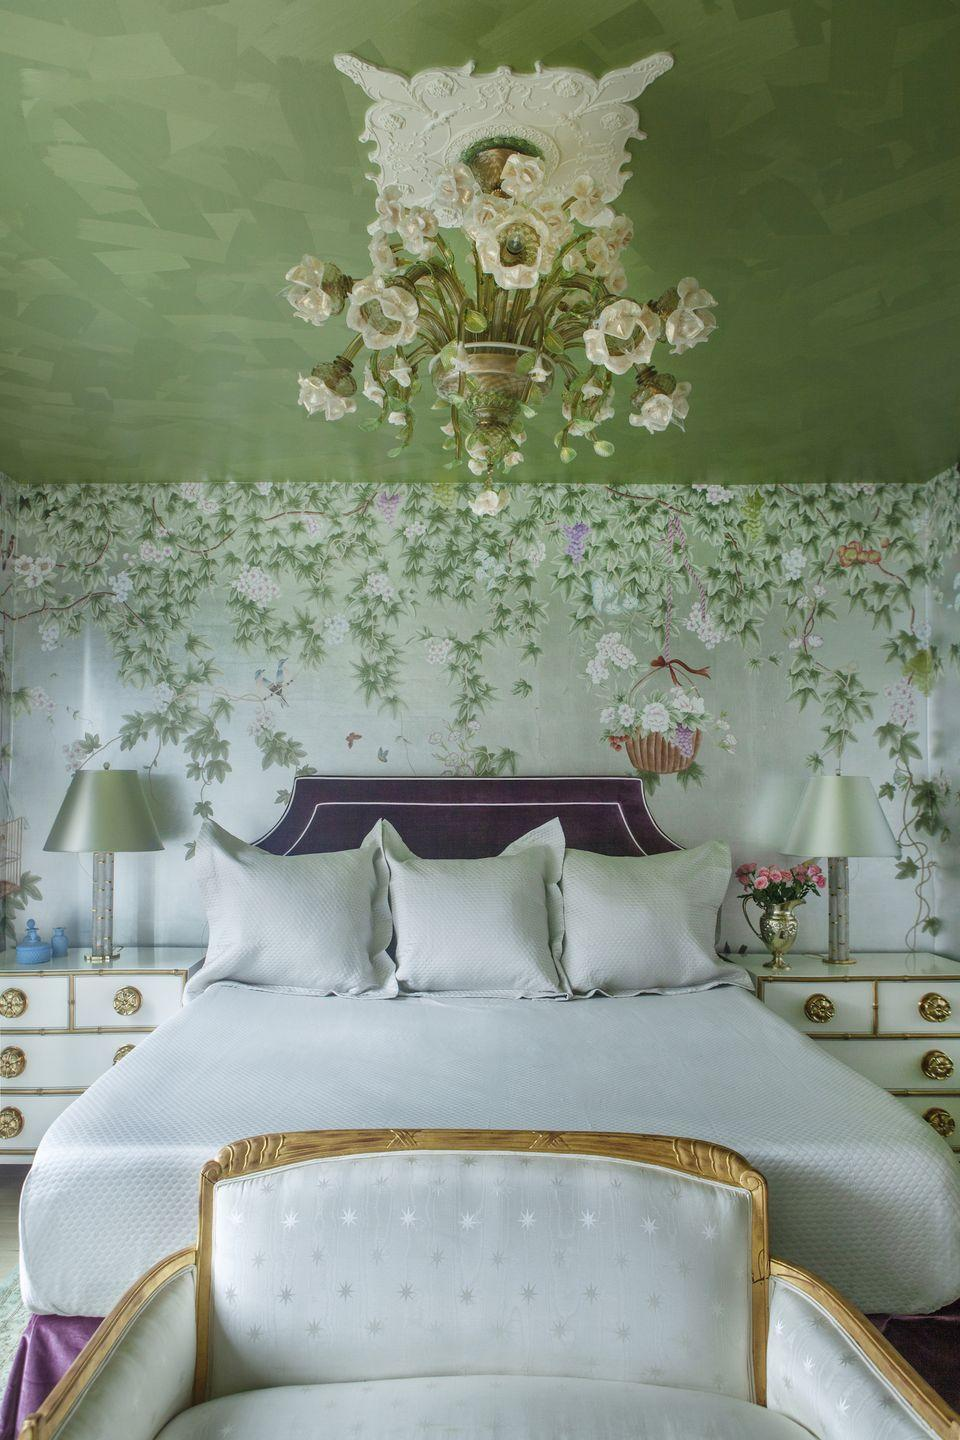 "<p>This fanciful Upper West Side bedroom designed by <a href=""https://sashabikoff.com/"" rel=""nofollow noopener"" target=""_blank"" data-ylk=""slk:Sasha Bikoff"" class=""link rapid-noclick-resp"">Sasha Bikoff</a> offers a modern taste of the gardens of Versailles with 18th-century French antiques, a luxurious silk wallcovering, and a statement light fixture above the bed. Two smaller bedside lamps ensure a softer glow will fill the space when needed.</p>"